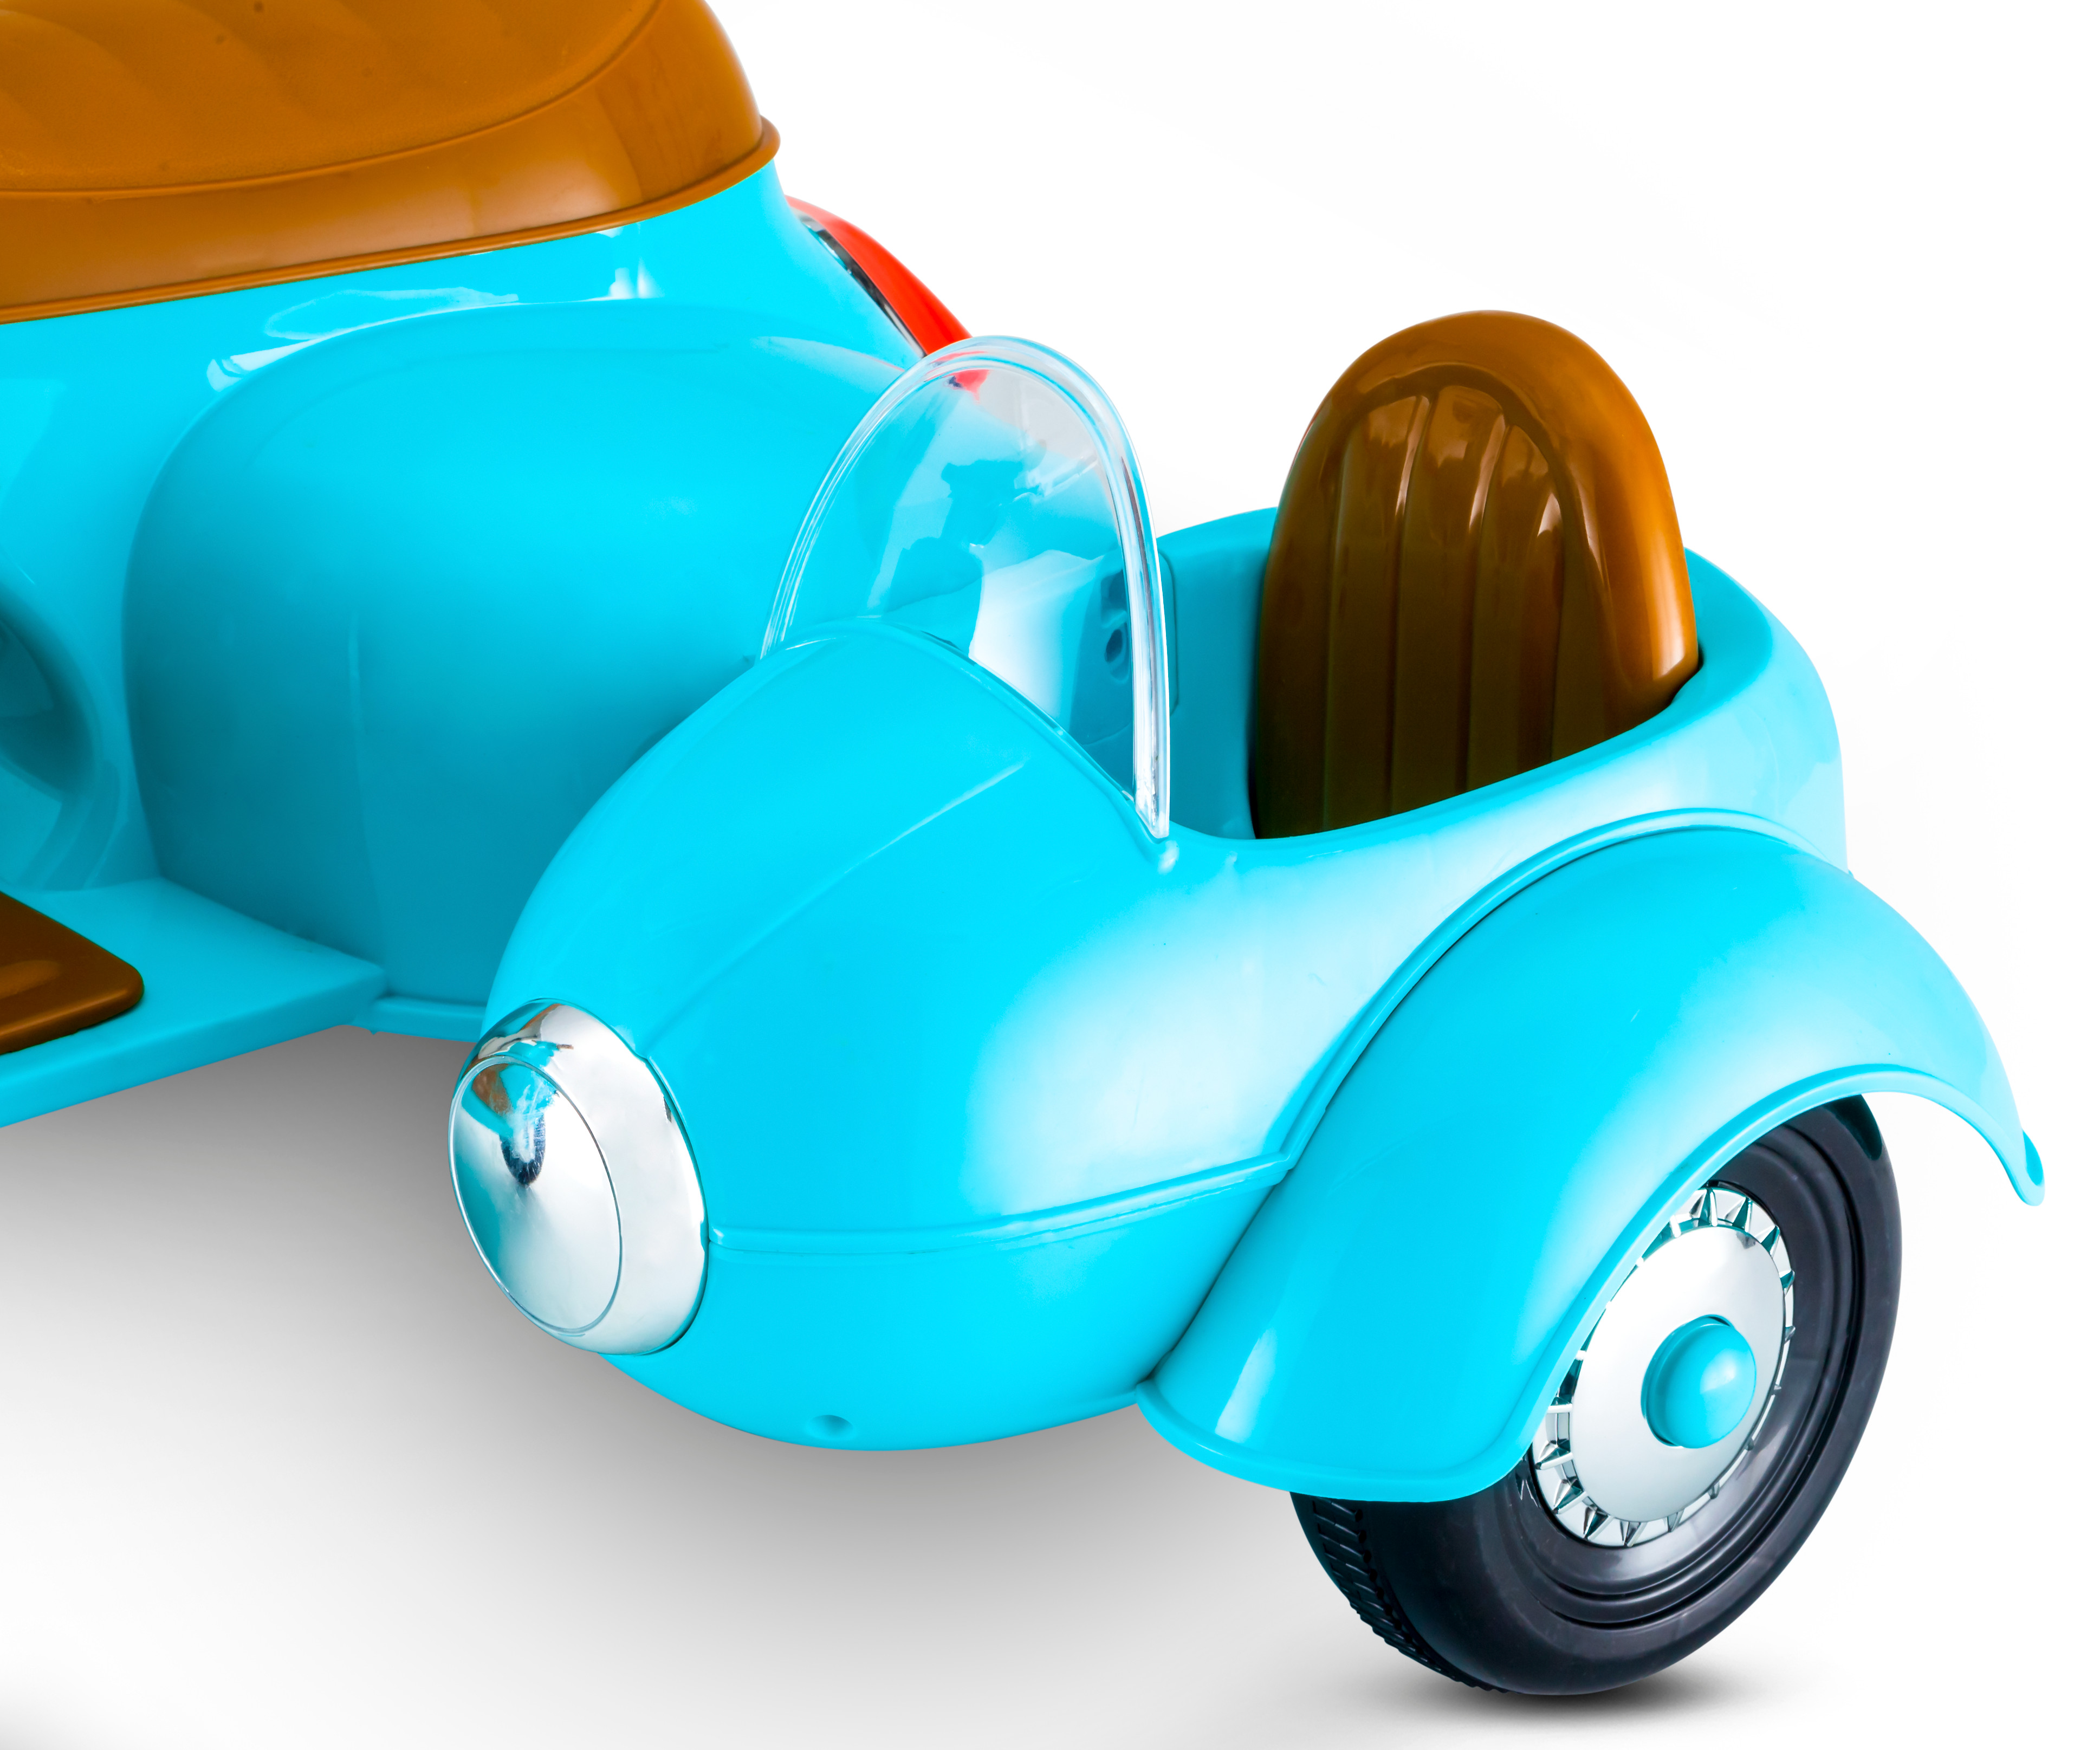 Walmart Toys Scooters For Boys : Volt scooter with sidecar by kid trax blue walmart